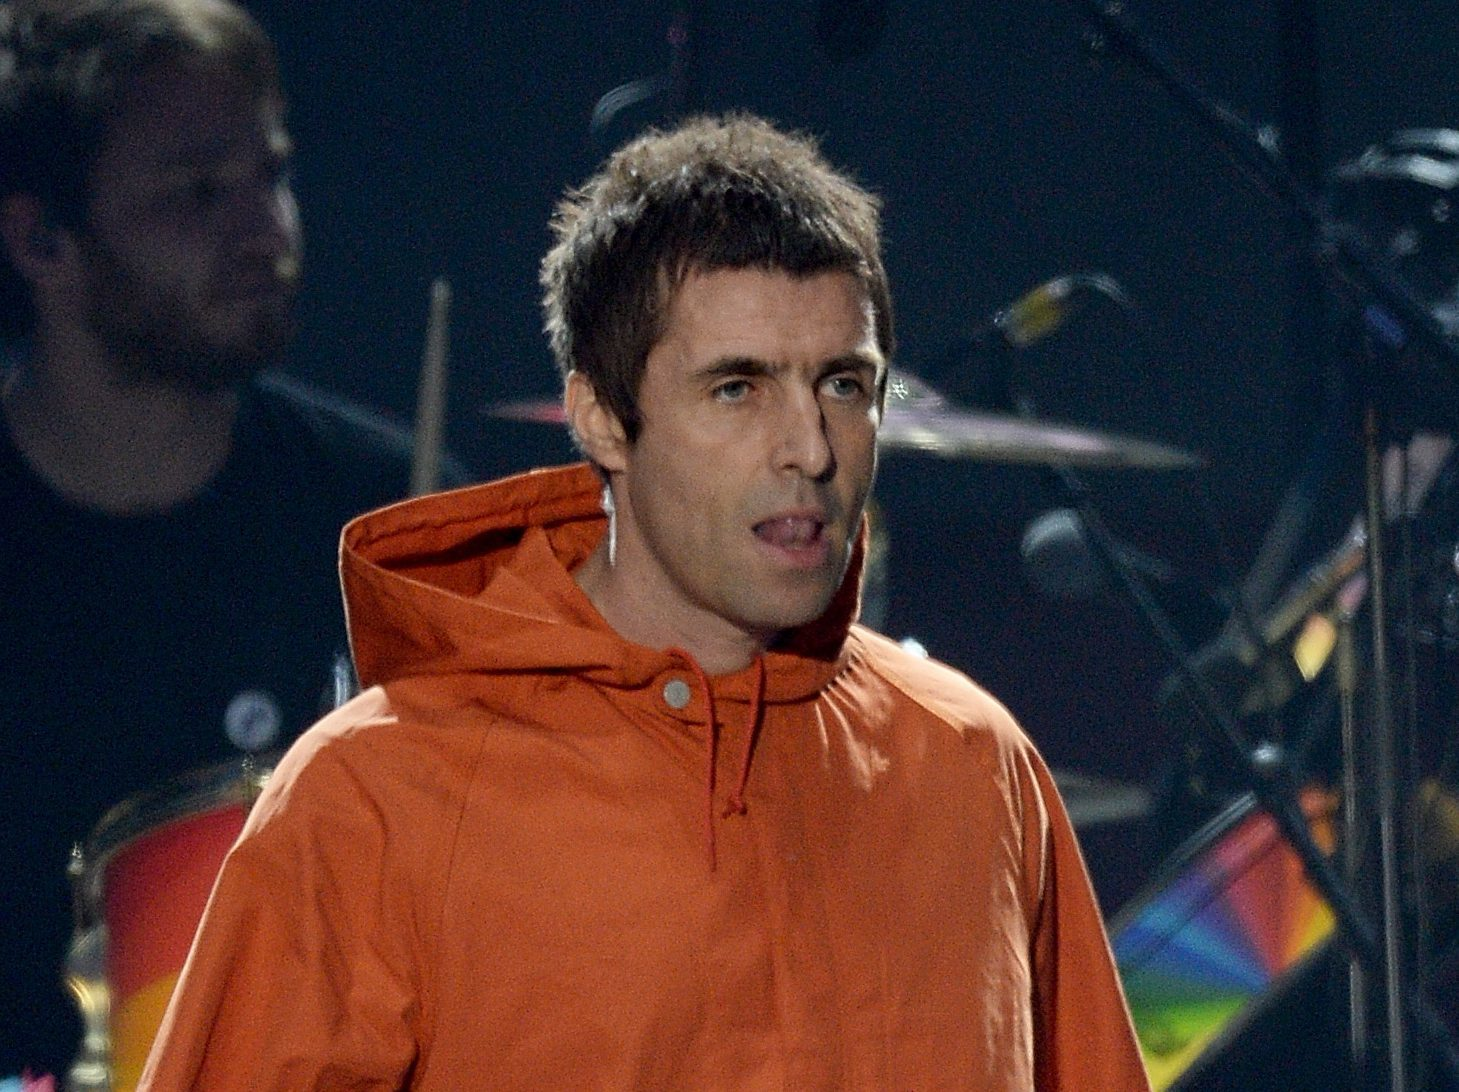 Liam Gallagher performs on stage on June 4, 2017 in Manchester, England. (Getty Images/Dave Hogan for One Love Manchester)